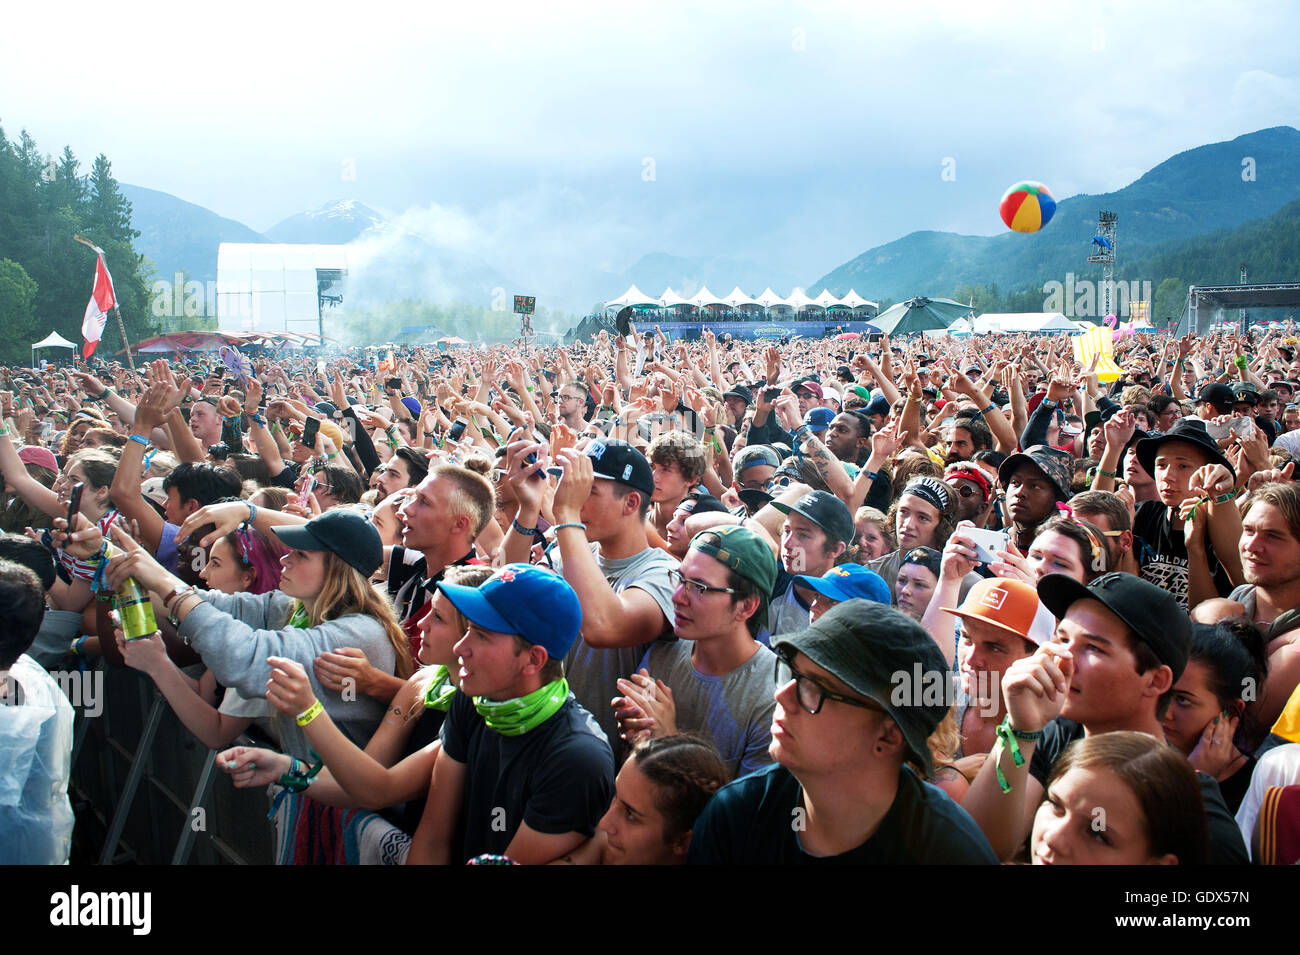 Huge crowds the outdoor rock concerts.  Fans cheer in the rain at the Pemberton Music Festival.  Pemberton BC, Canada - Stock Image